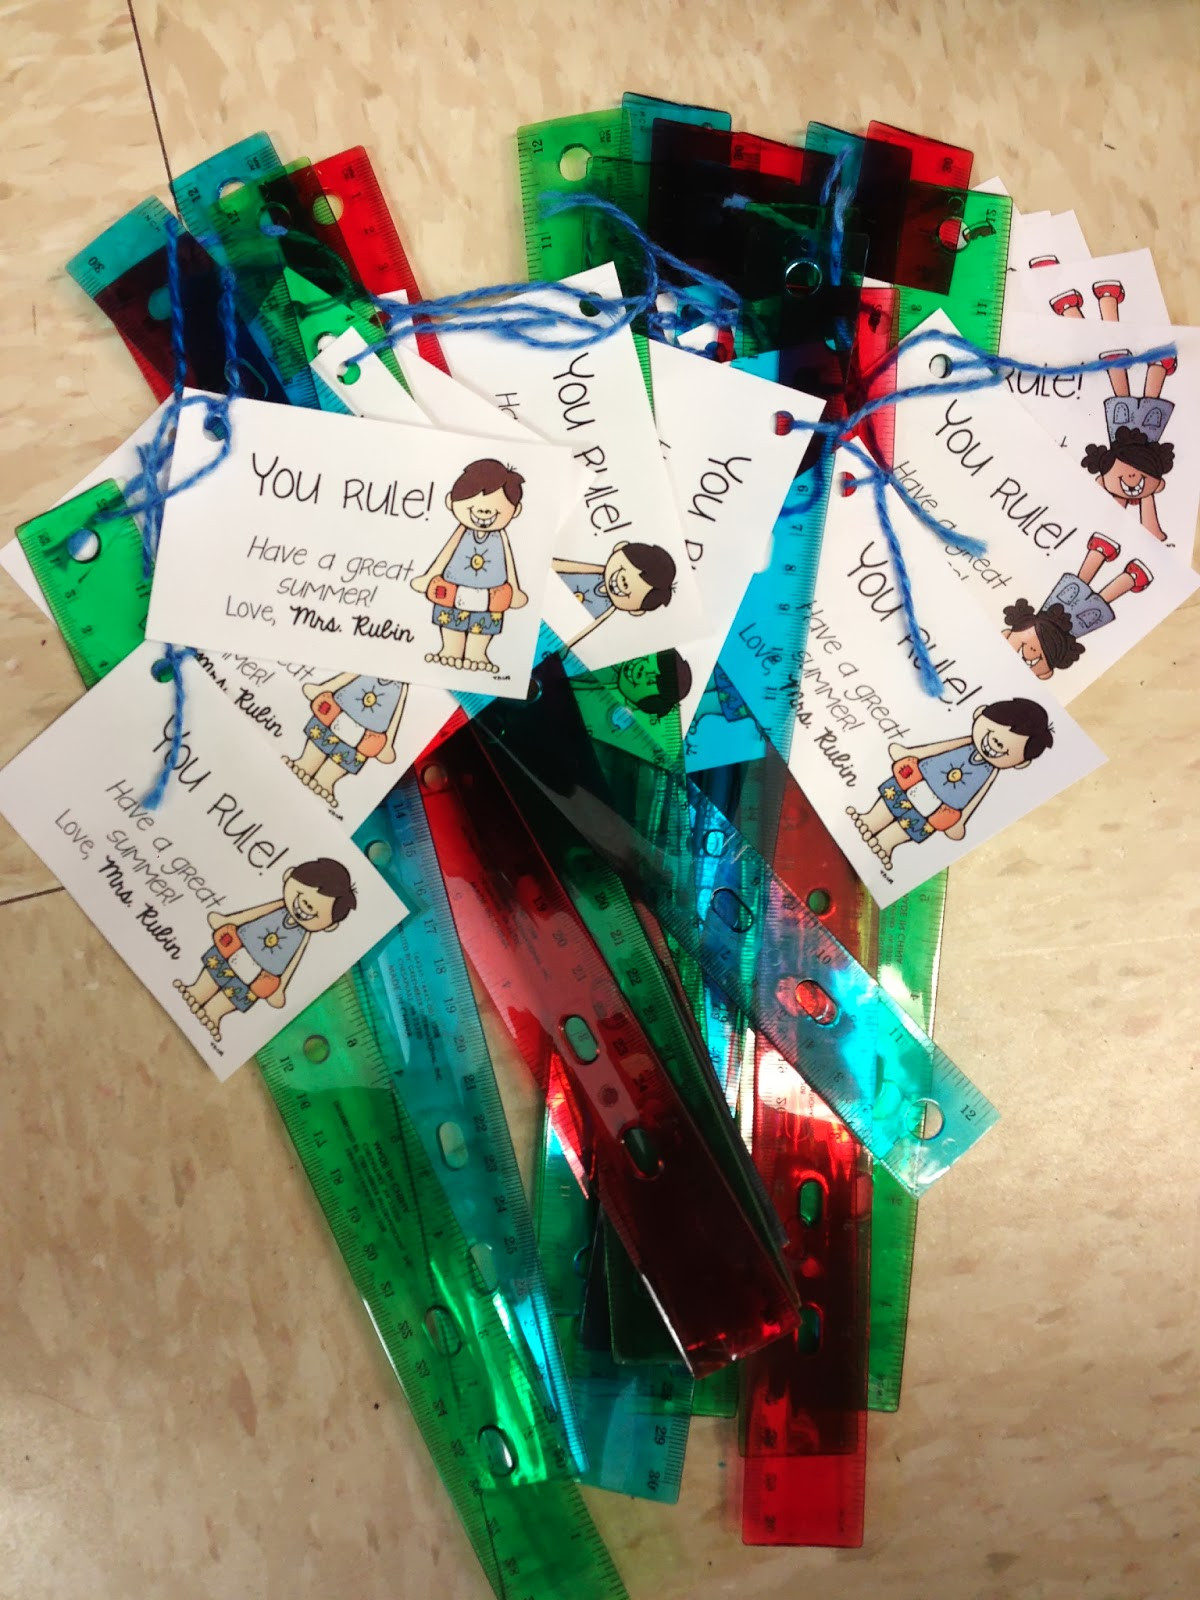 Best ideas about Gift Ideas For Kindergarten Graduation . Save or Pin Rulin The Roost End of Year Gifts and A New Look Now.